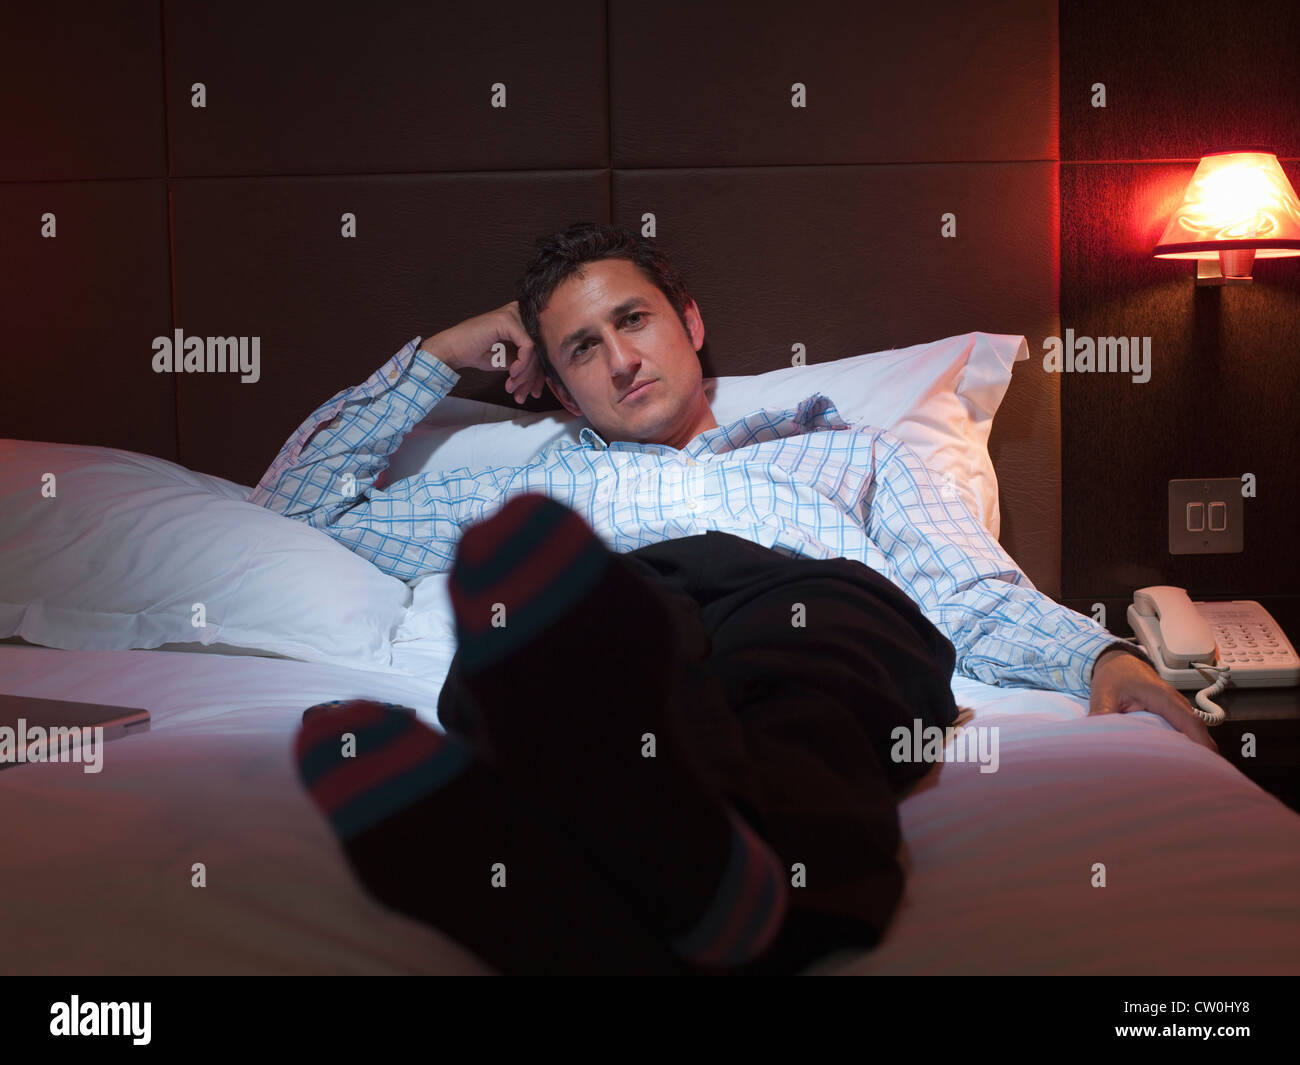 Businessman relaxing in hotel room - Stock Image